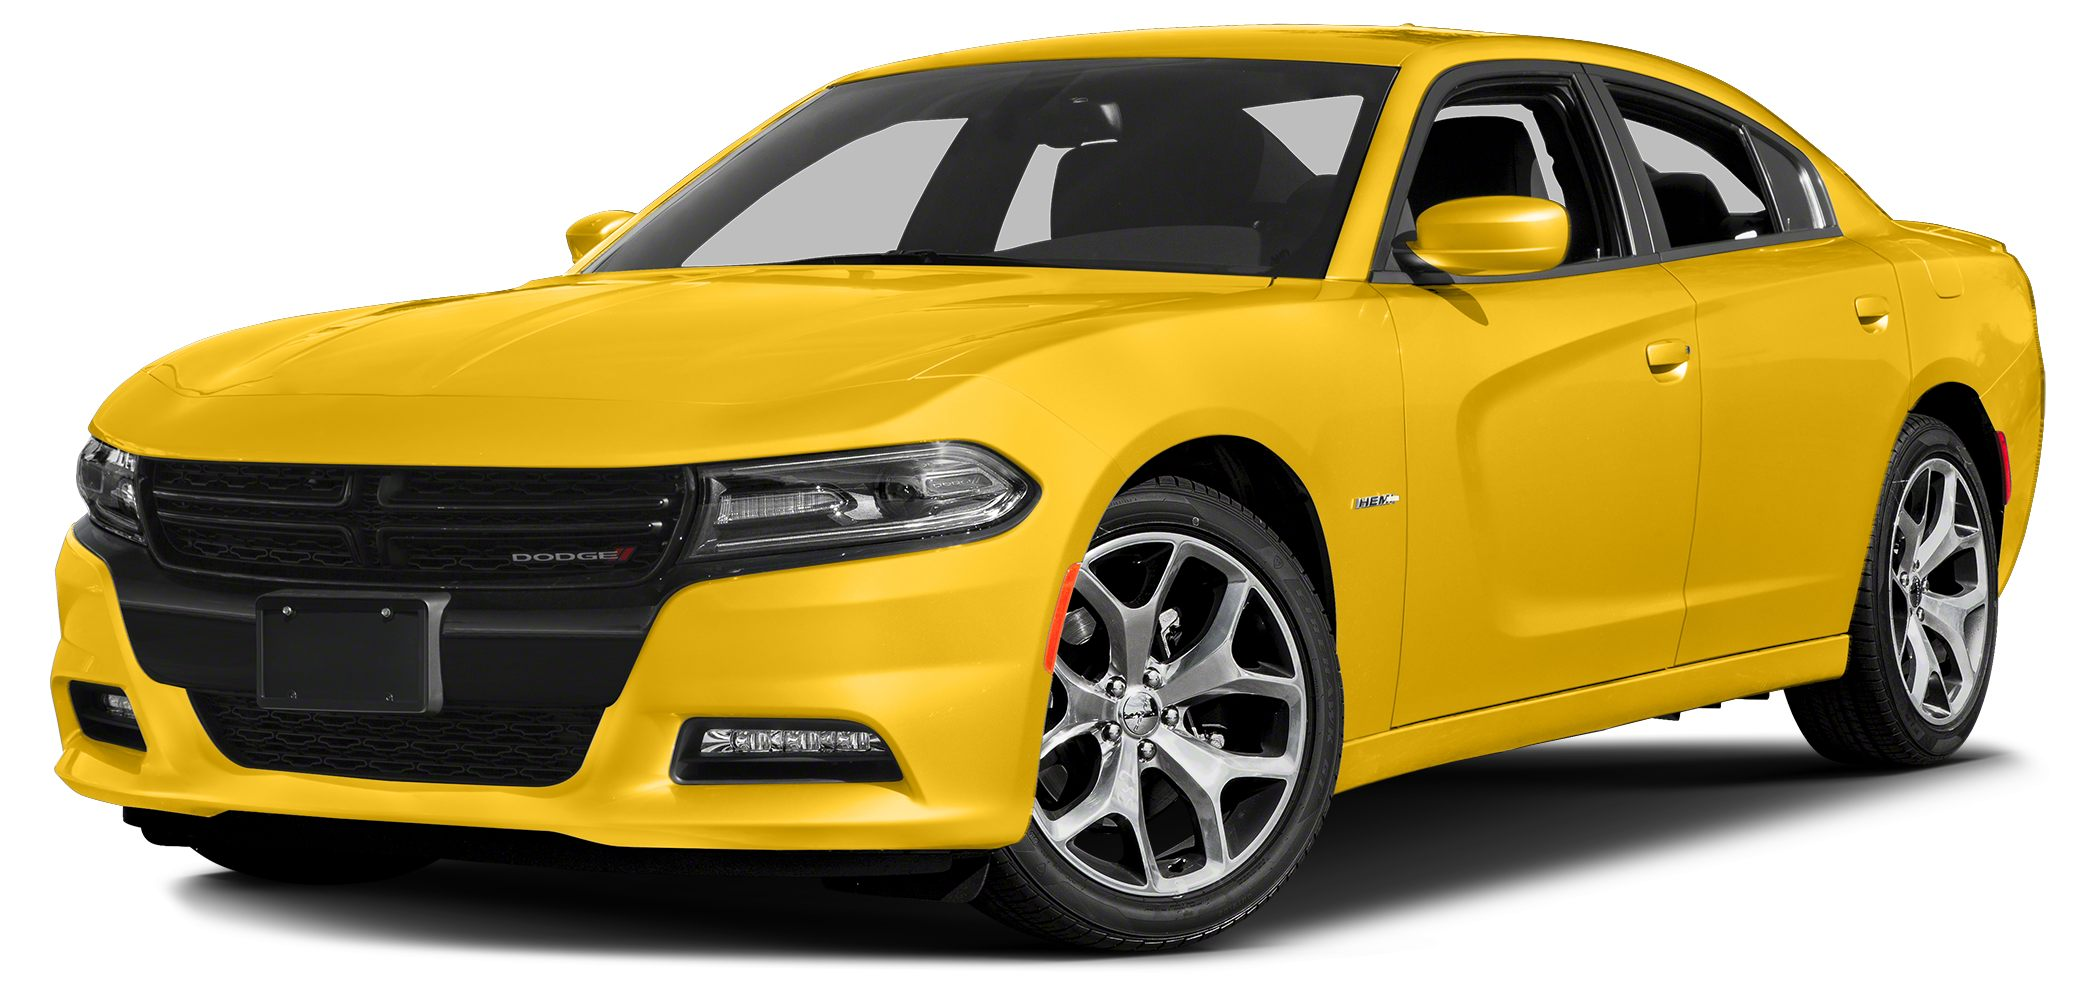 2017 Dodge Charger RT General Managers Price ReductionCertified Pre-Owned 2017 Dodge Charger R